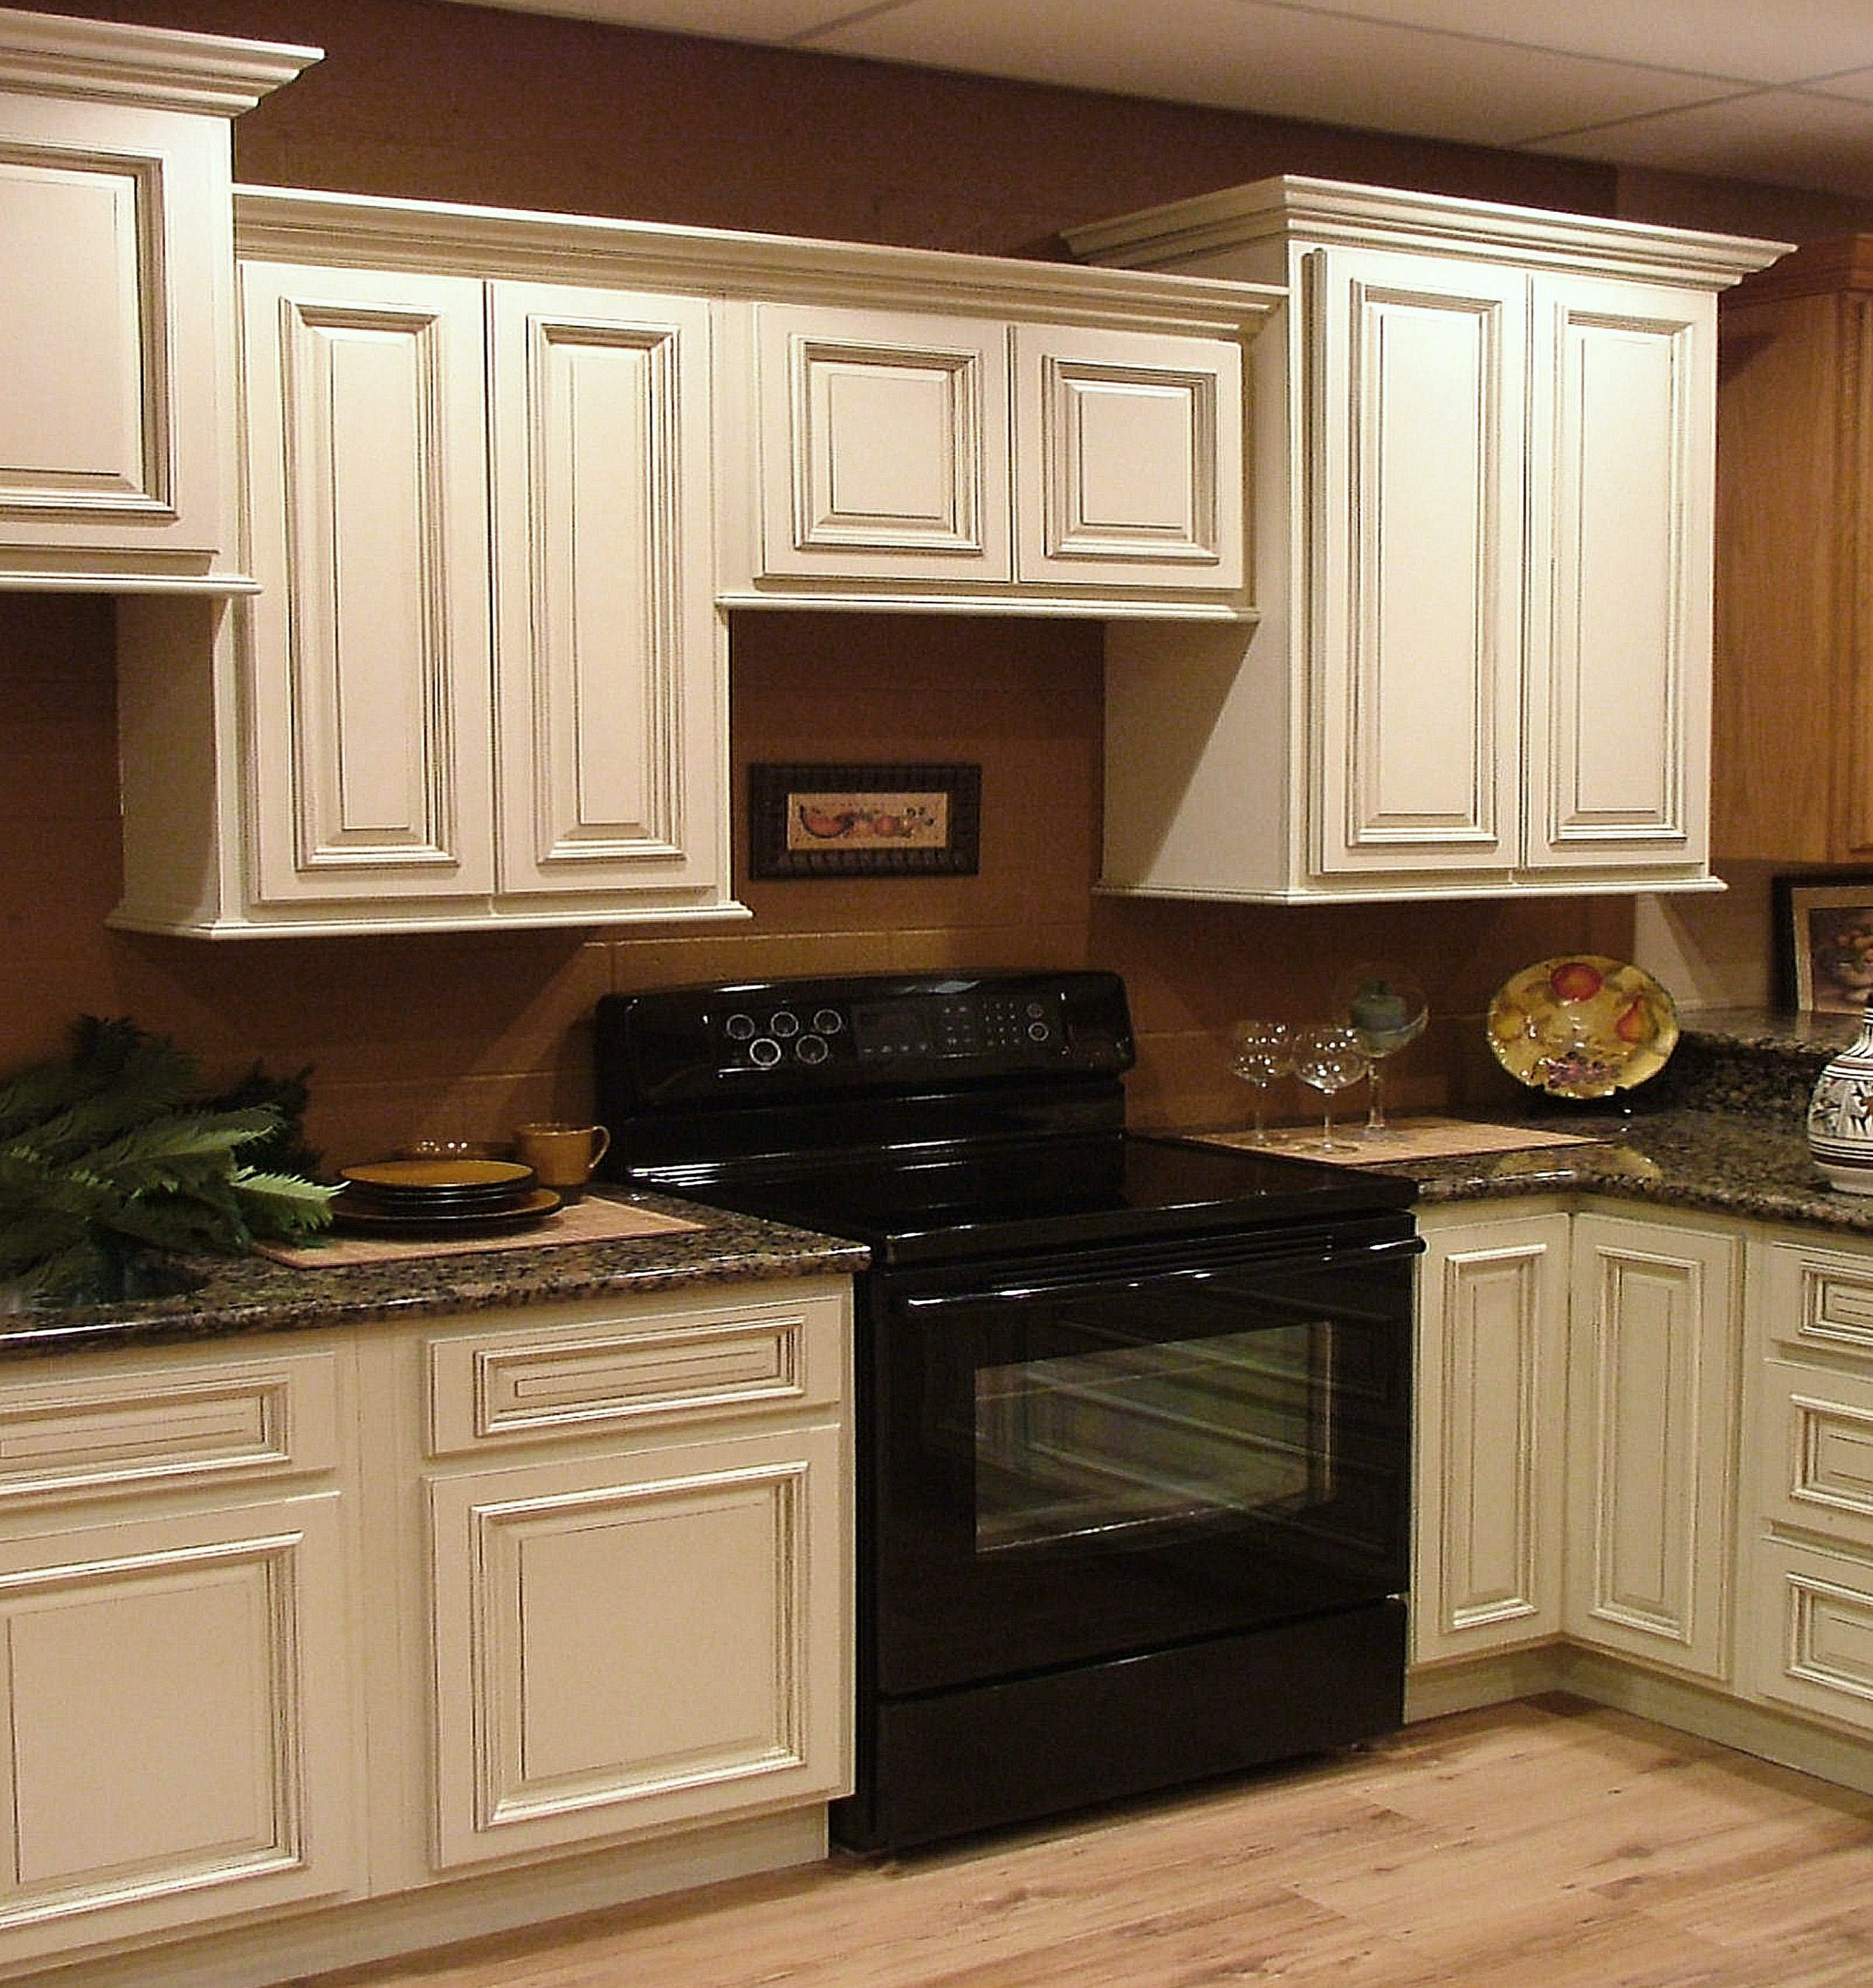 Kitchen Cabinet Guide: Best Way To Paint Kitchen Cabinets: A Step By Step Guide